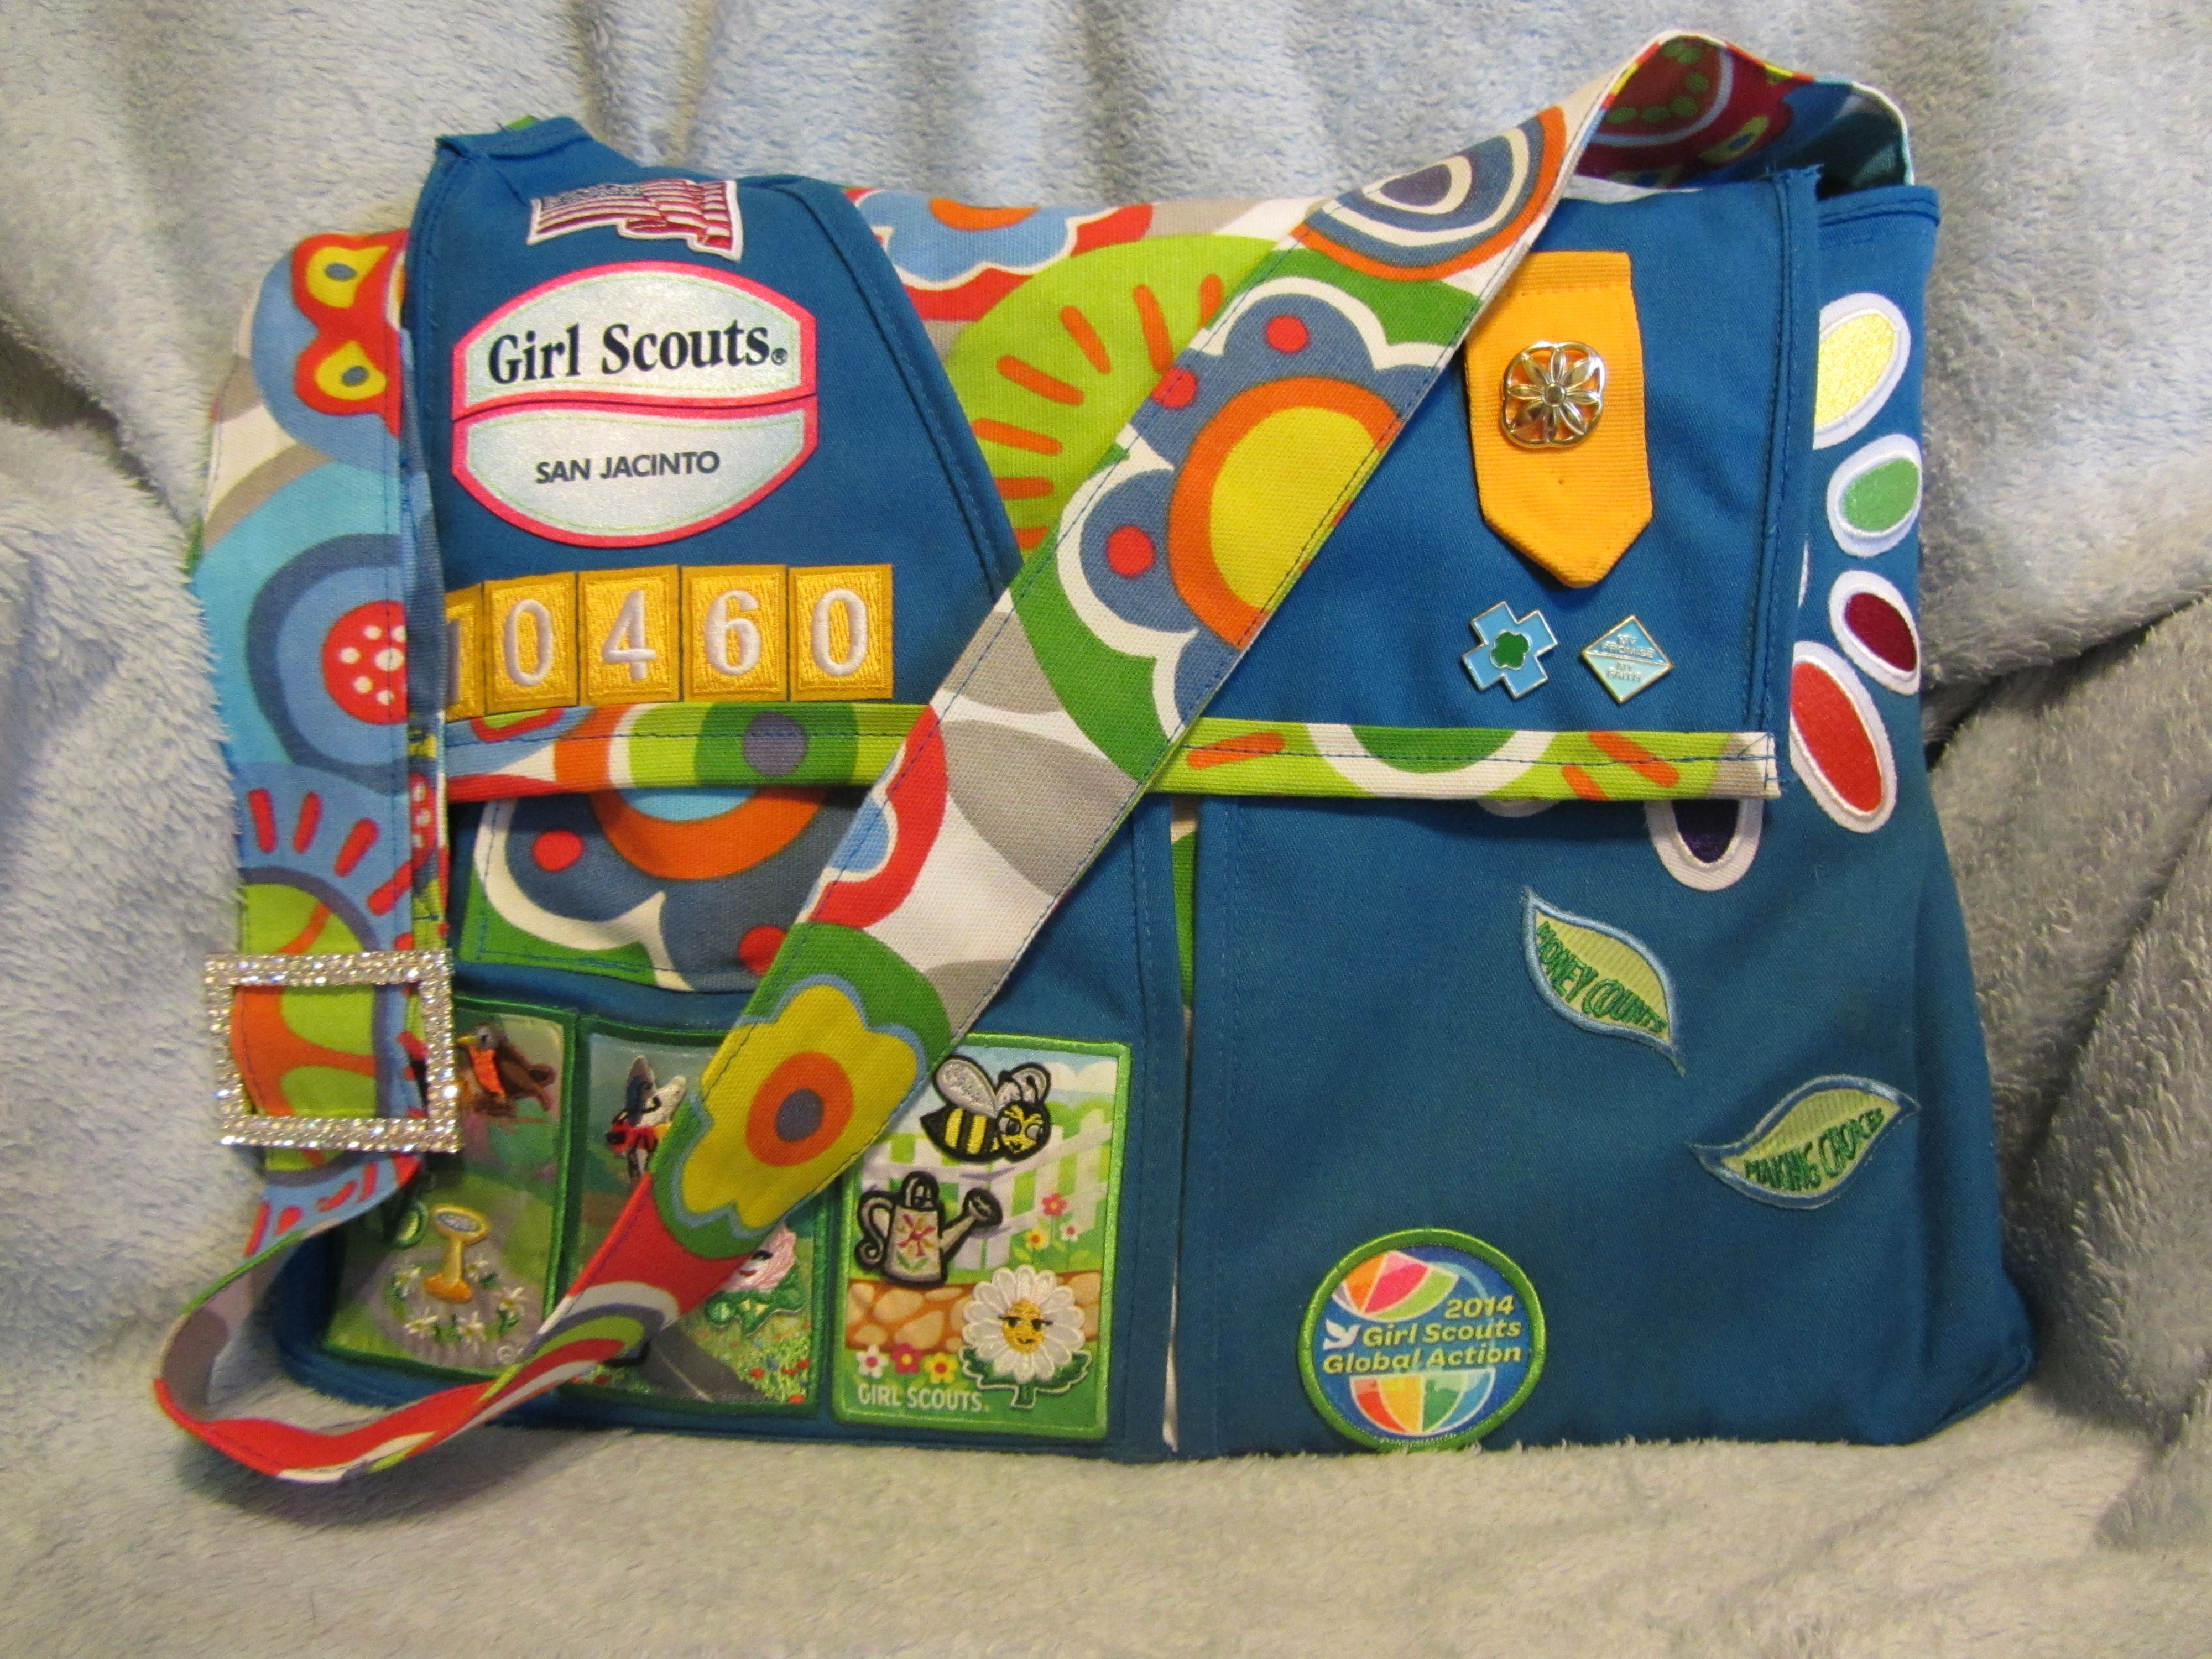 From Daisy Vest to Messenger Bag | girl scouts - planning